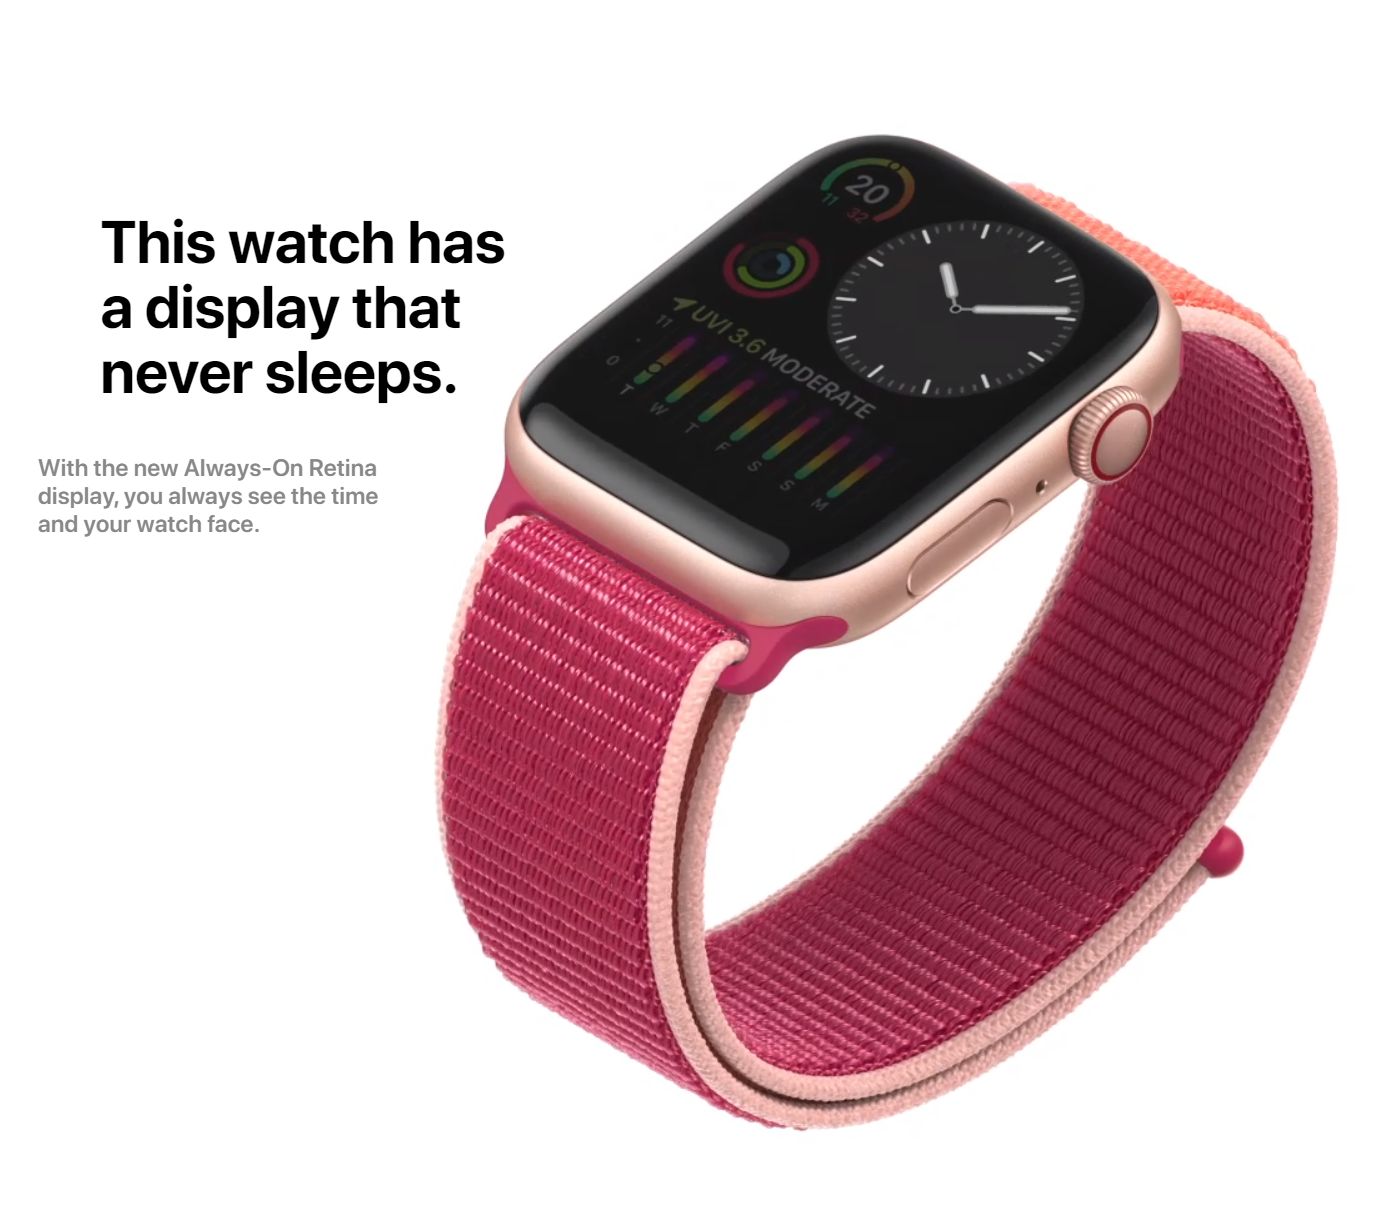 The new Always-On Display means the watch face will always be visible unlike before (Source: Apple)